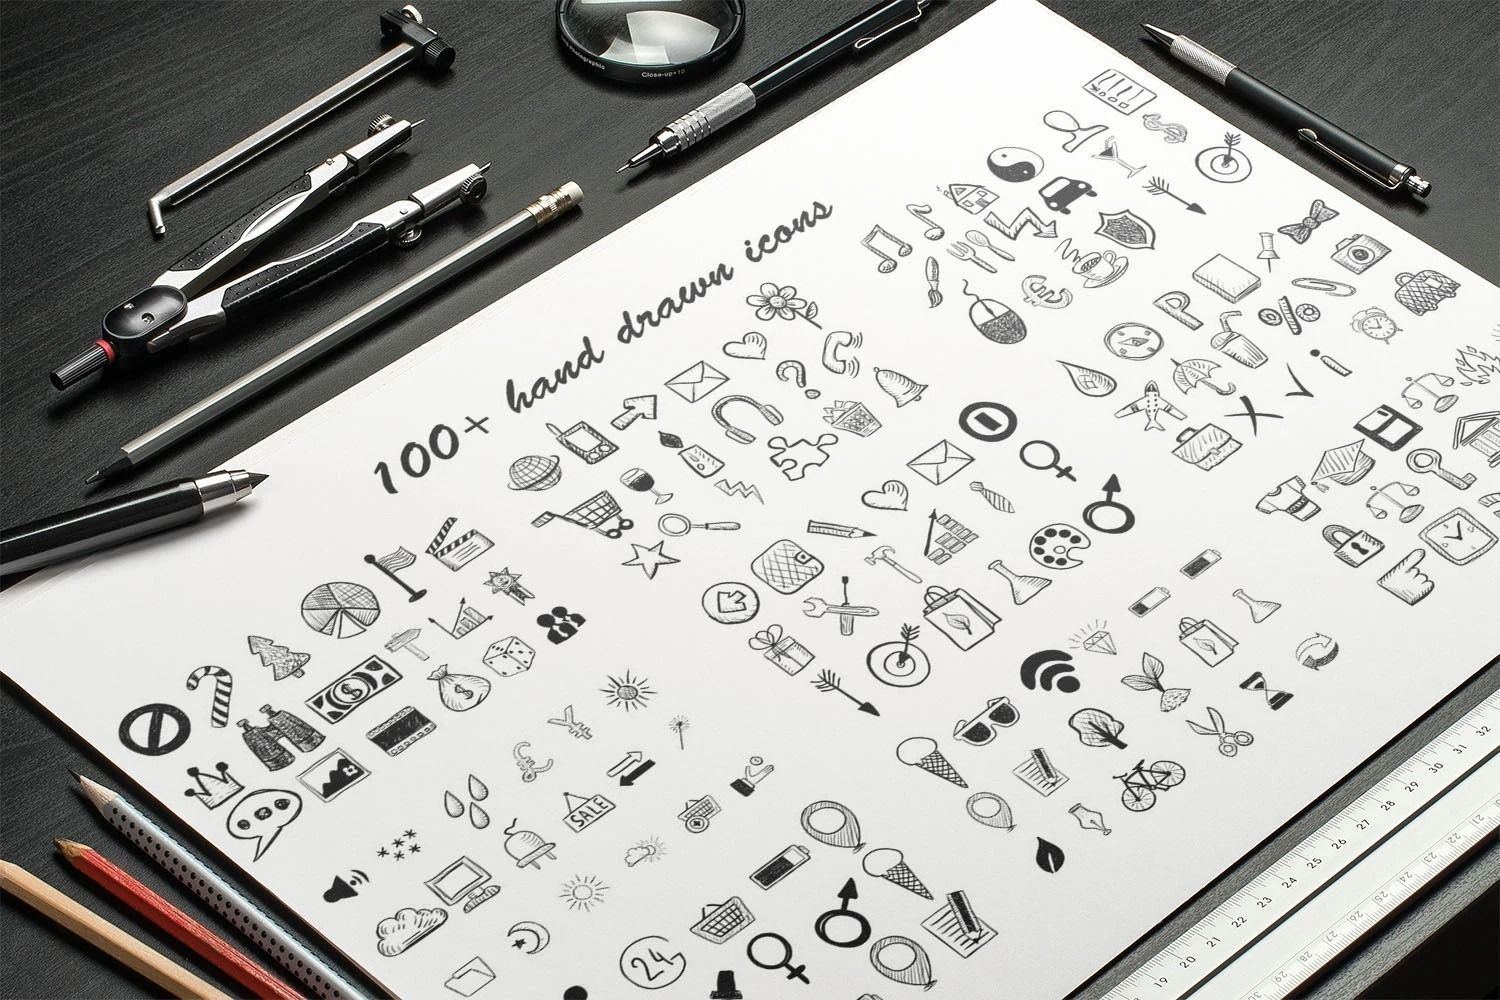 100+ Powerpoint Icons, Free Vector Icons, Set Hand Drawn